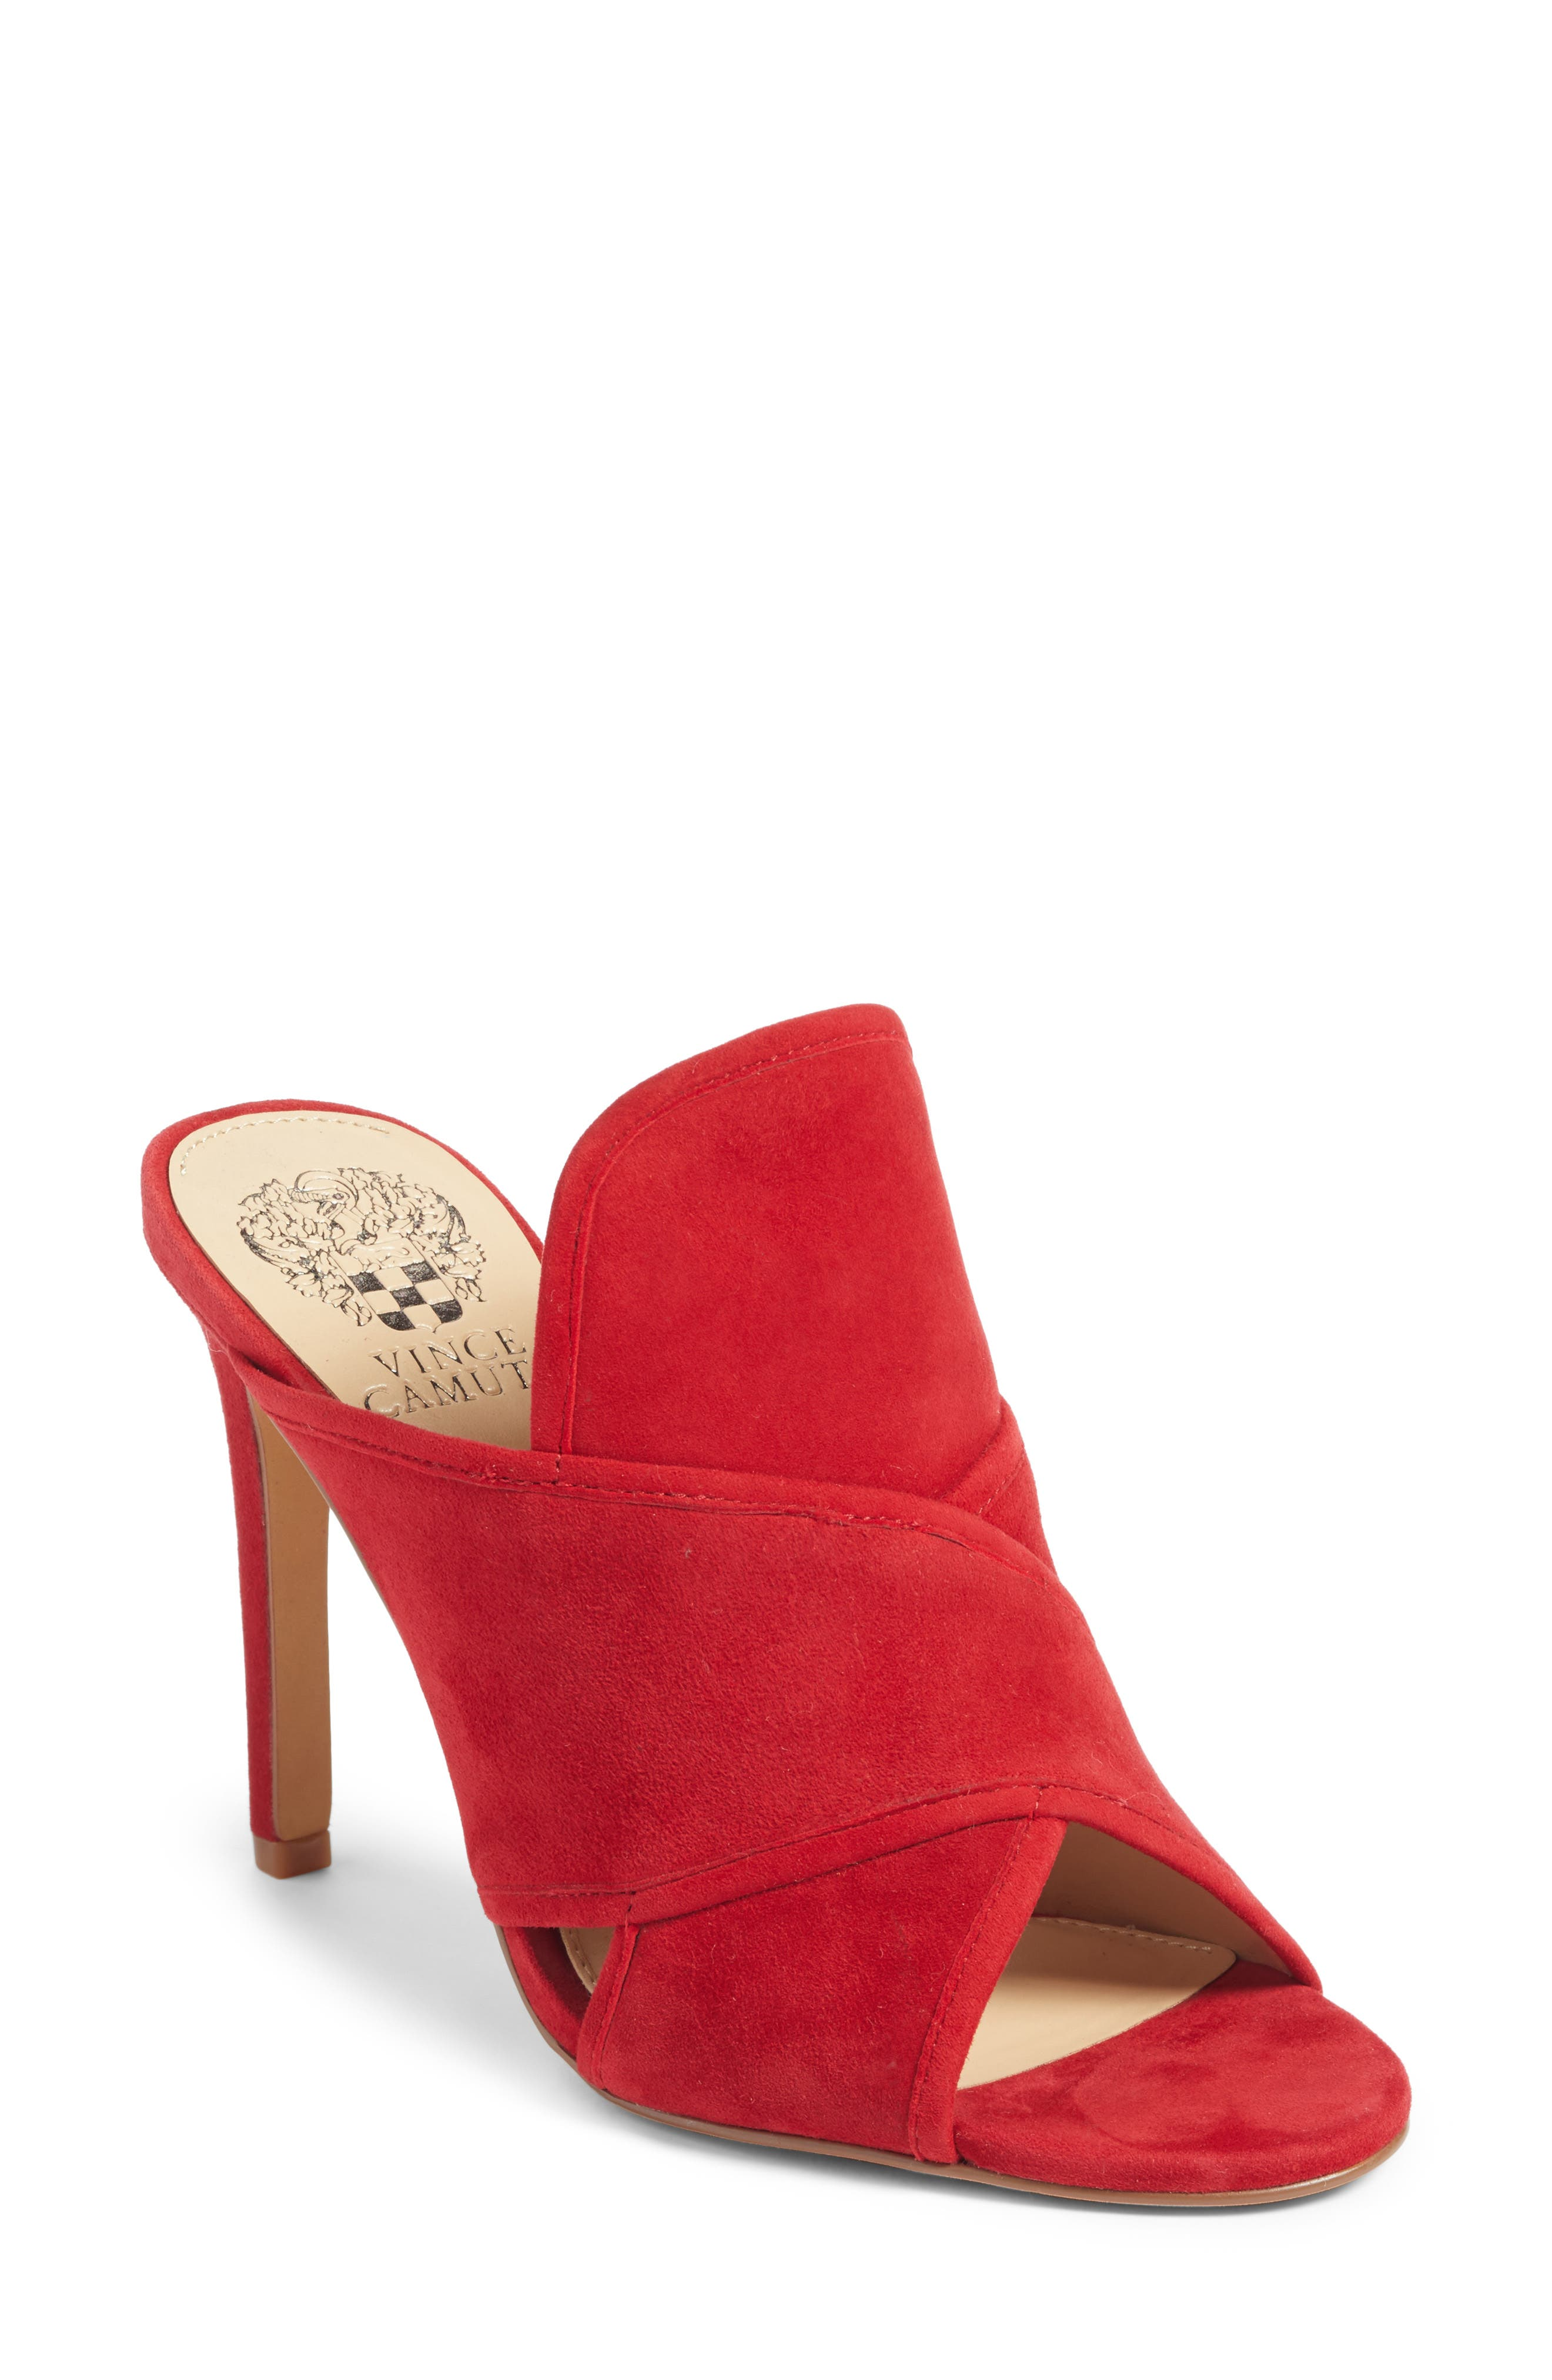 Alternate Image 1 Selected - Vince Camuto Kizzia Mule (Women)